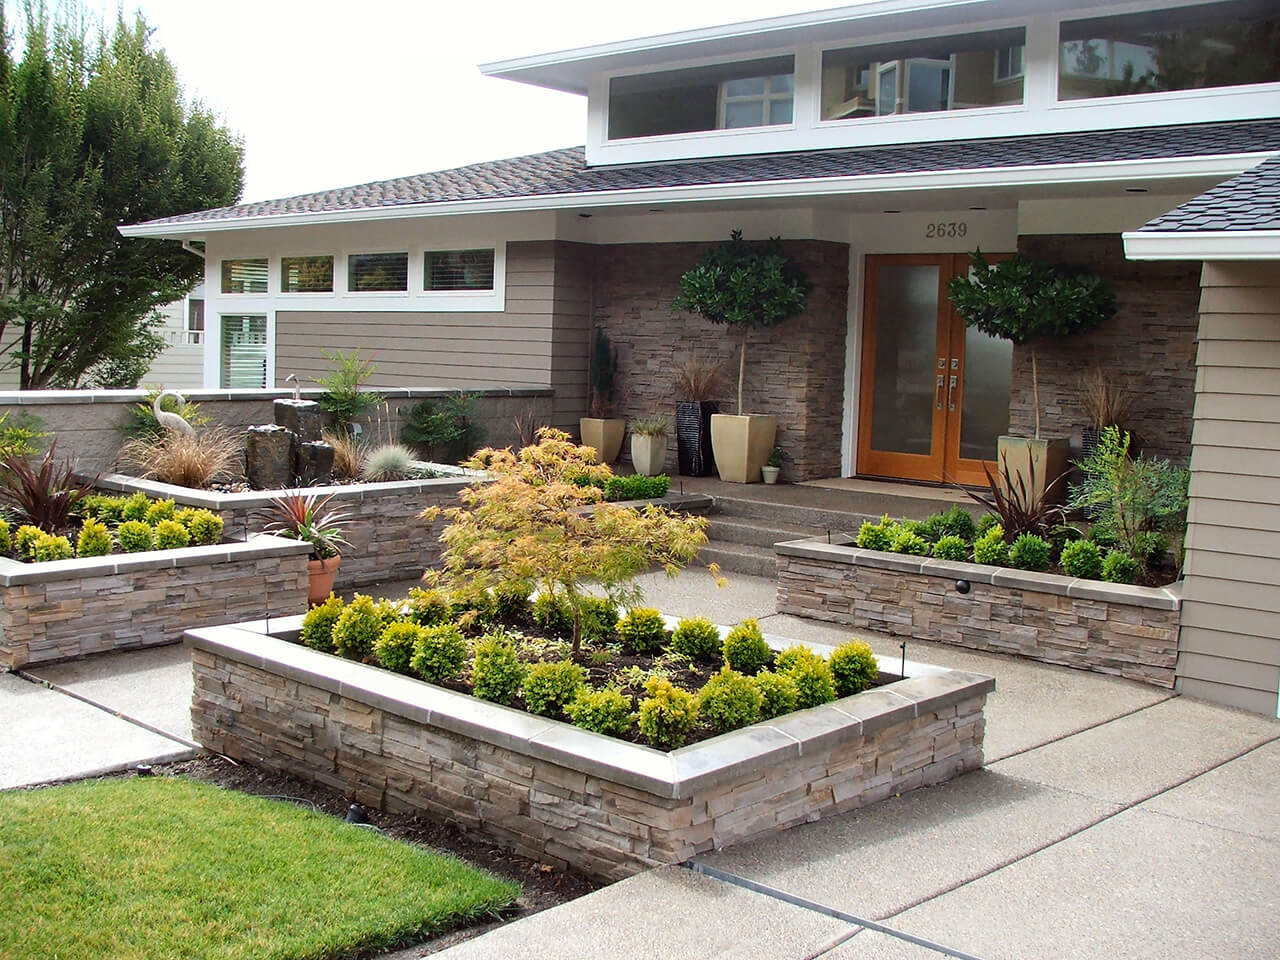 50 best front yard landscaping ideas and garden designs for Small front landscaping ideas